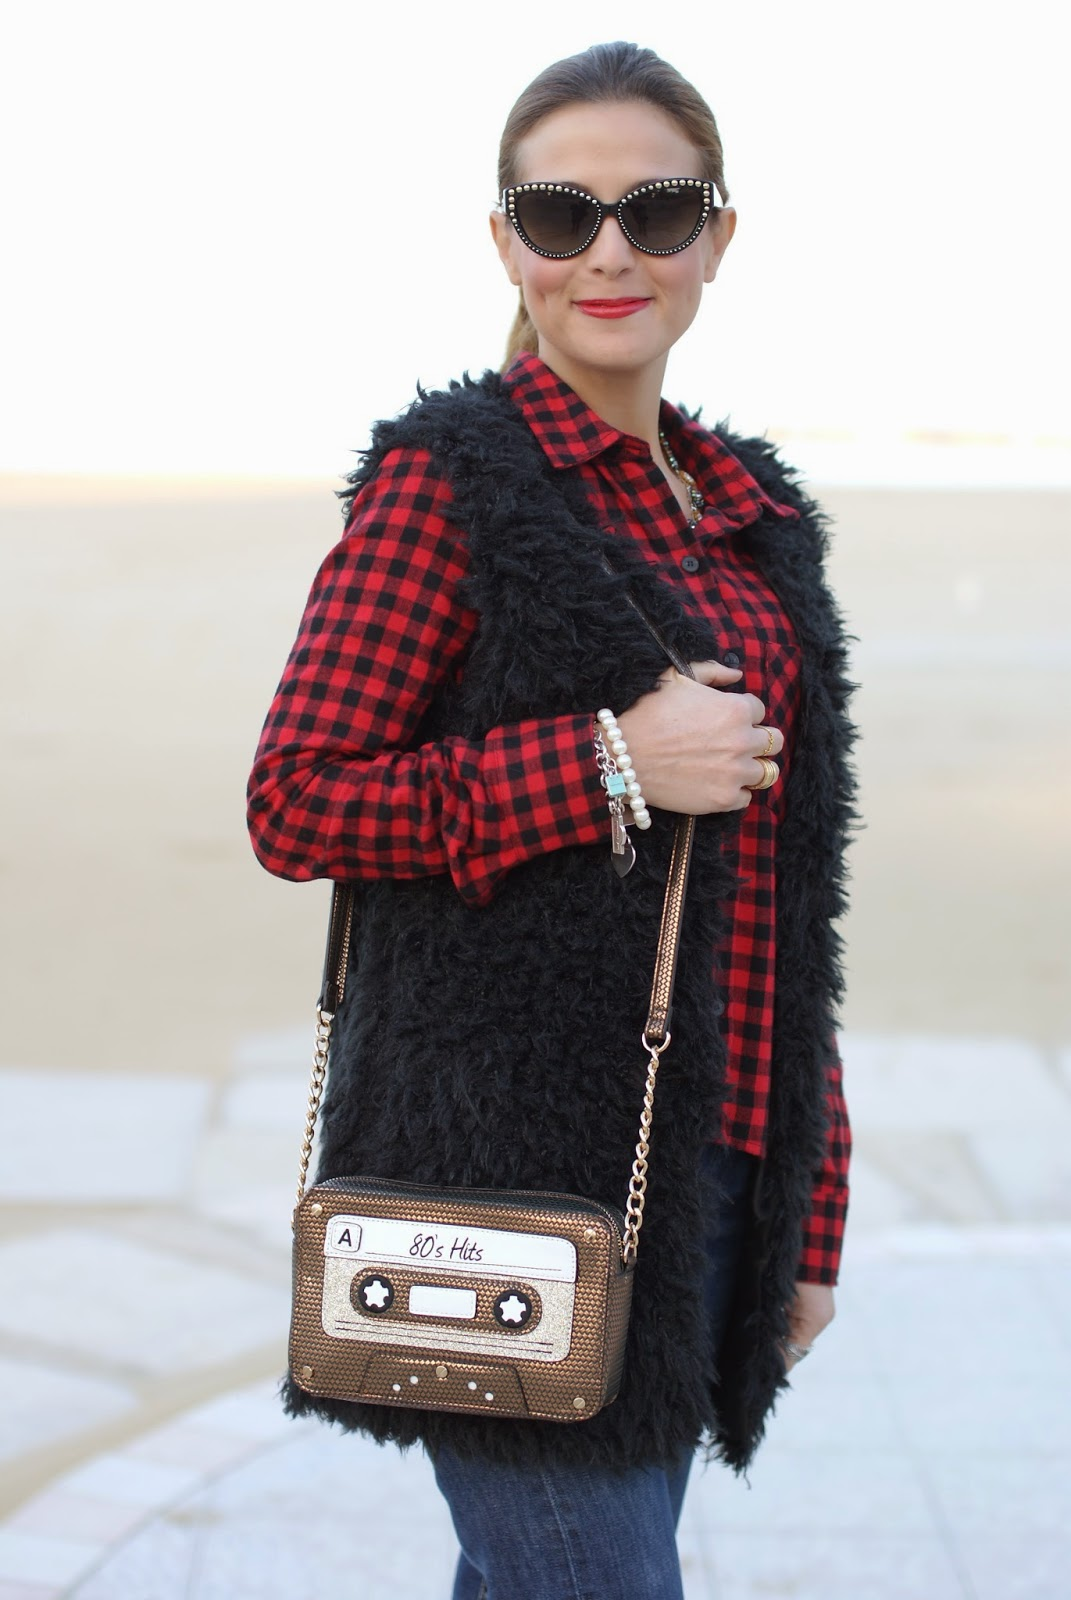 Buffalo plaid shirt, Levi's 501 jeans, accessorize 80s hits bag, Fashion and Cookies, fashion blogger, chelsea boots